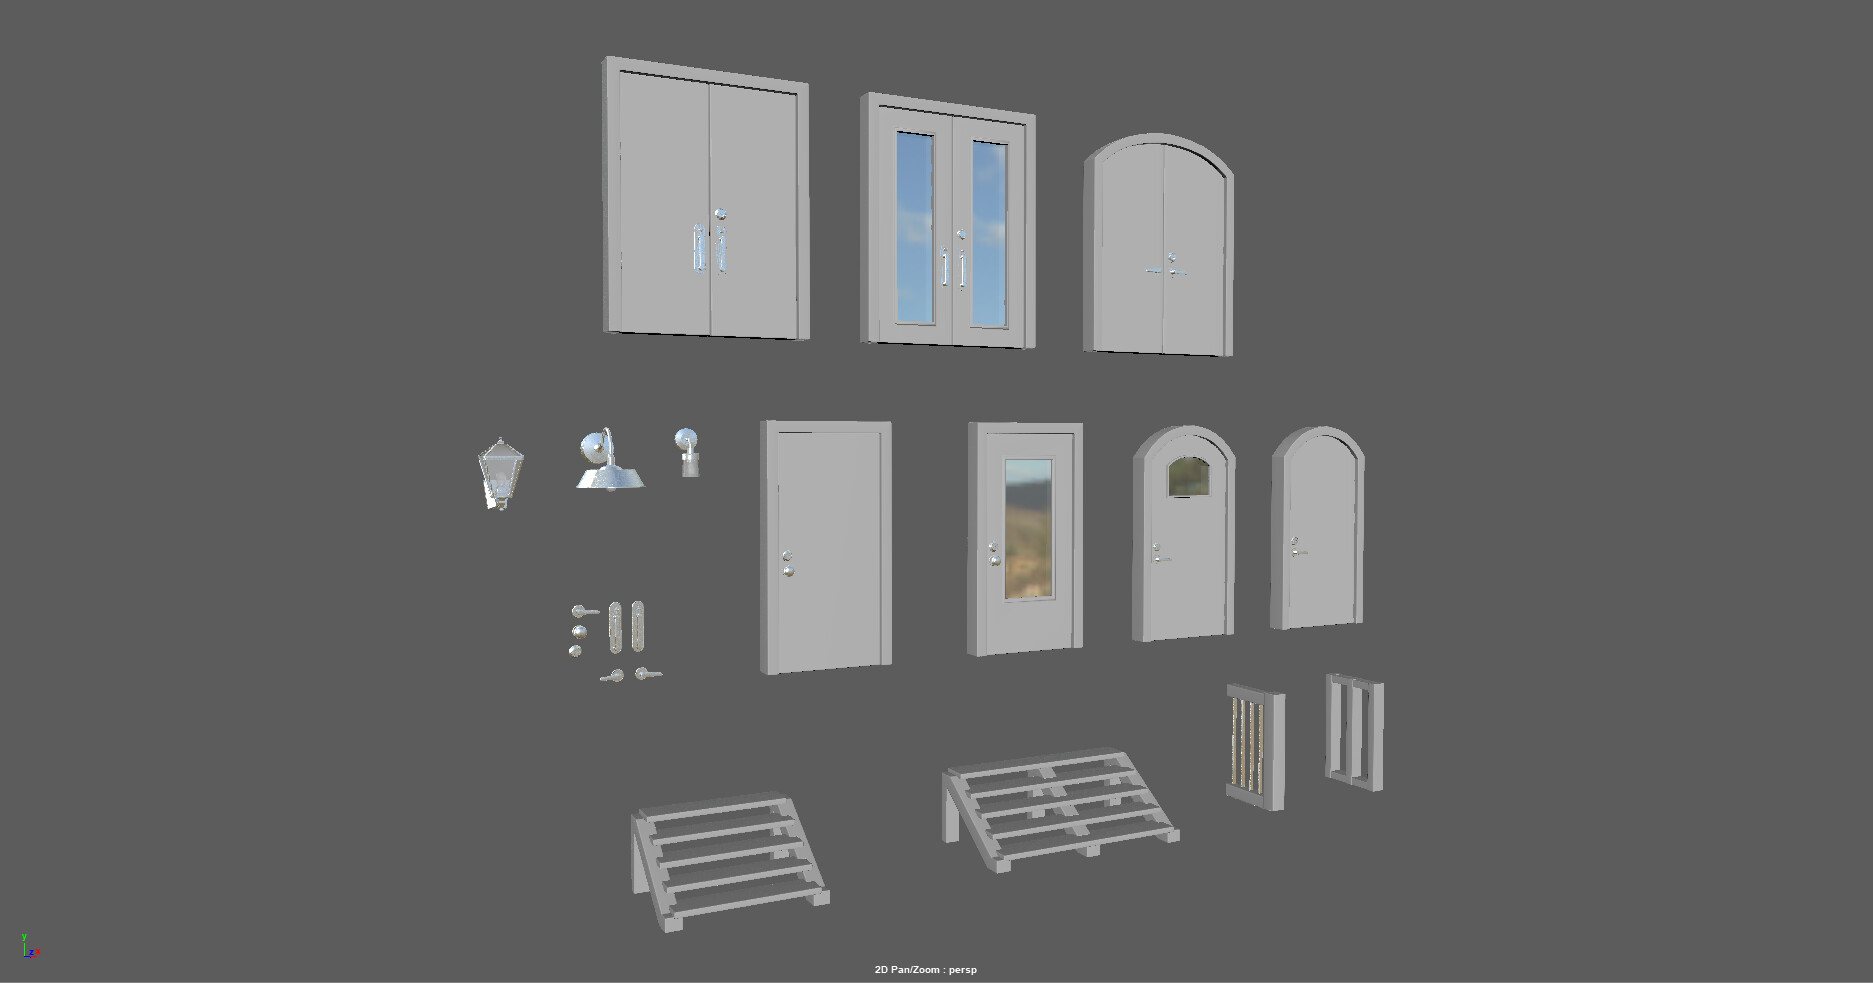 All door options